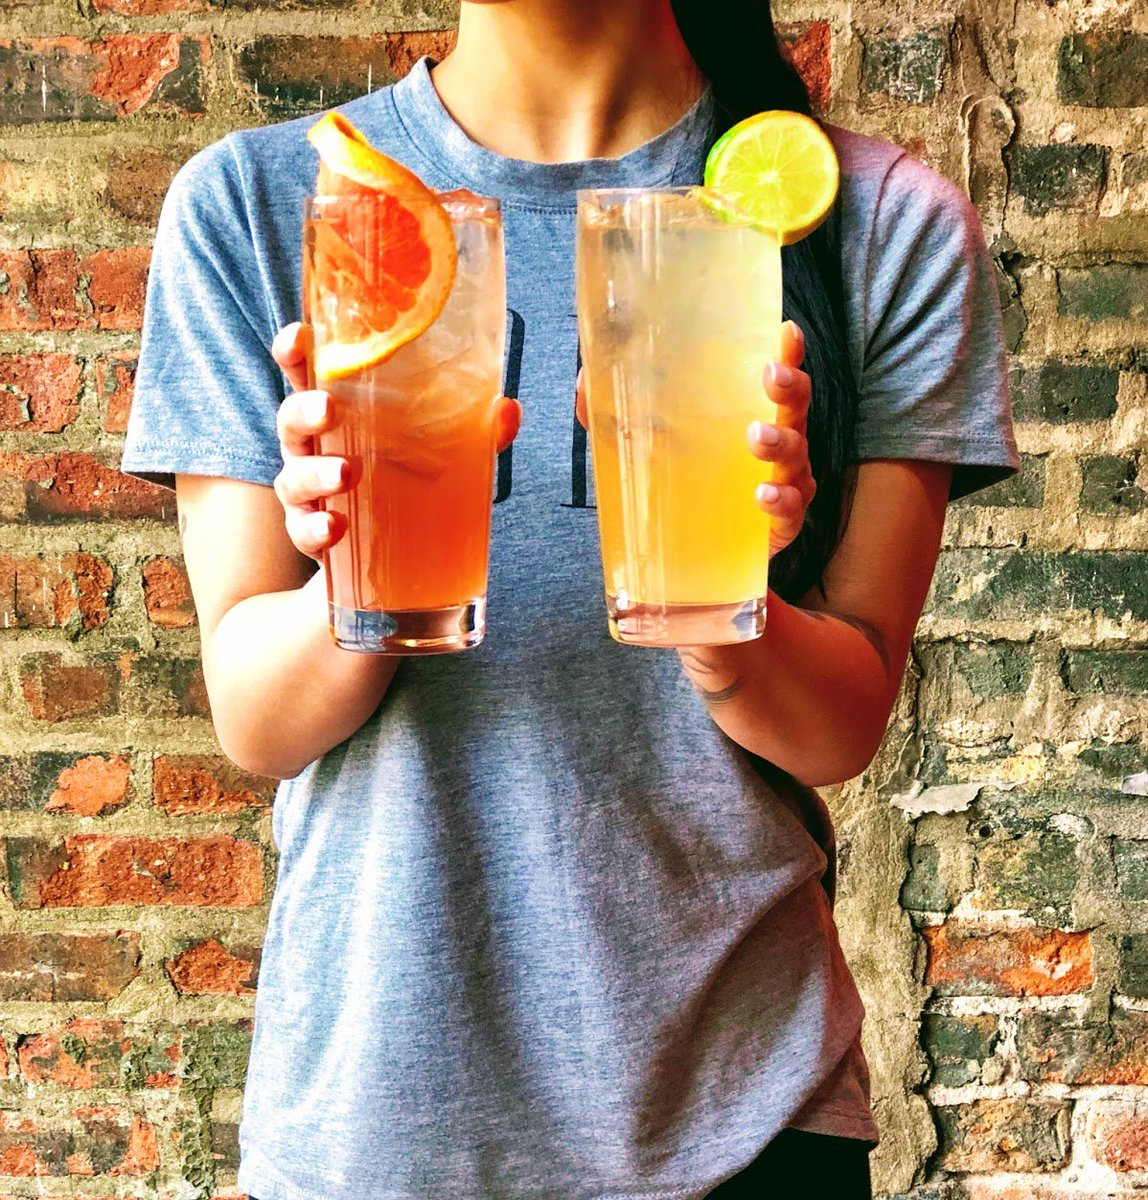 When 1 just doesn&#39;t make the cut, we double UP! With $8 signature cocktails, 4-6pm every Thursday y&#39;all!  #BarCargoChi #HappyHour <br>http://pic.twitter.com/FEW41KgJF1